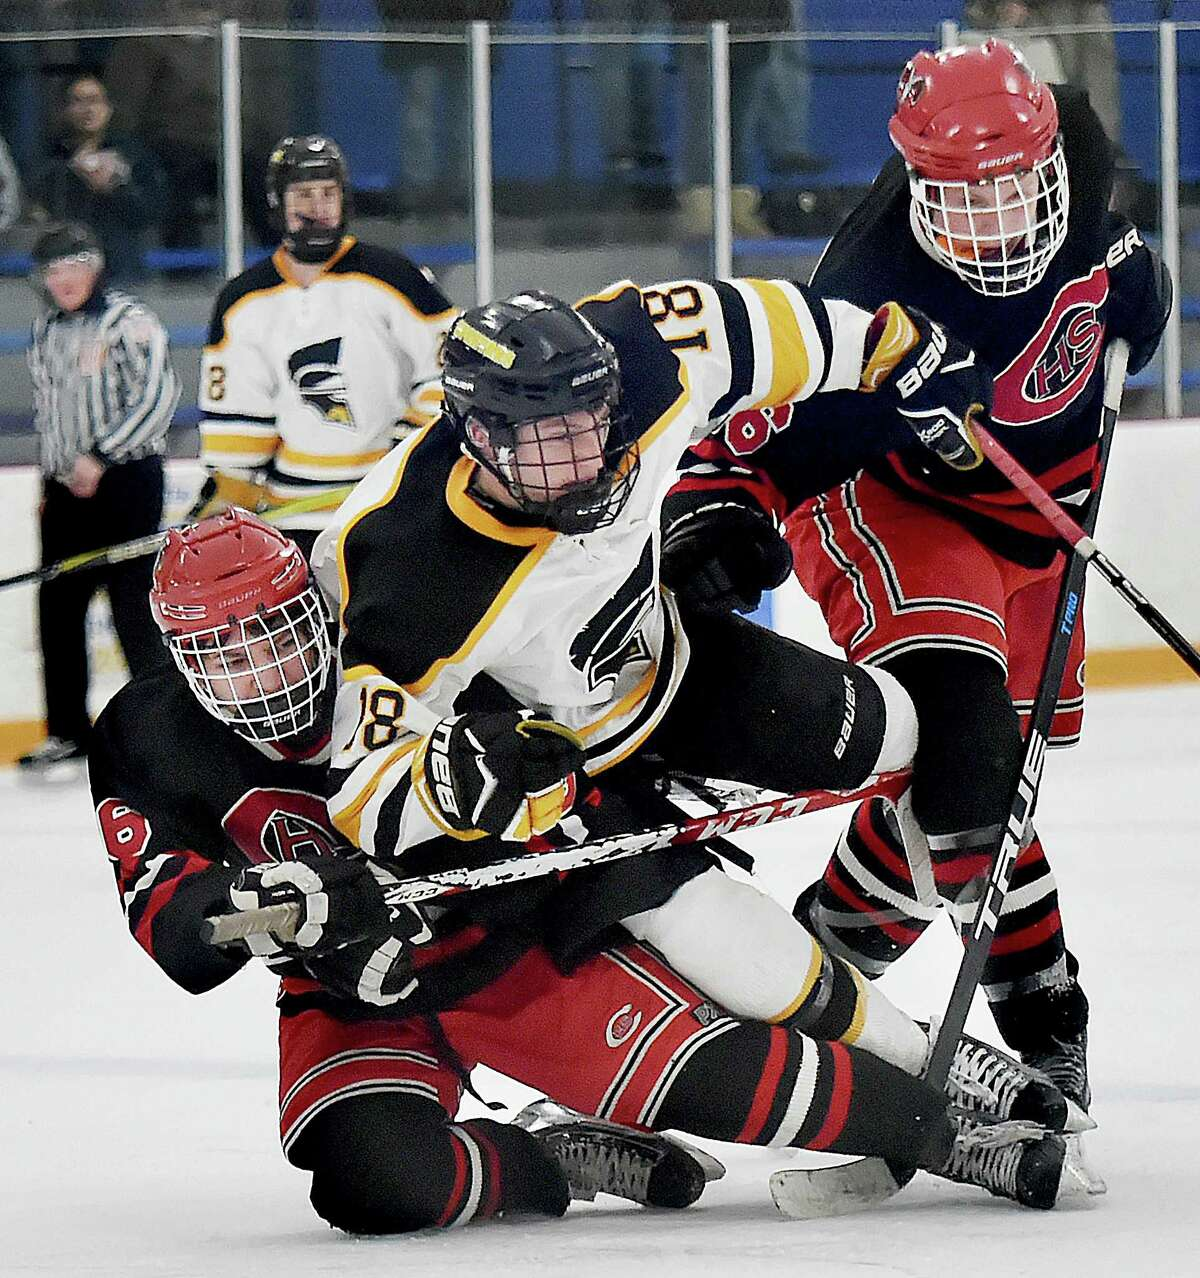 Amity junior forwared Jason Csejka (18) battles Cheshire junior forwards Jason McKinley (6) and Evan Veivia (16), Wednesday, Jan. 31, 2018, at Bennett Rink in West Haven. The Spartans tied the Rams, 4-4 in regulation, and a scoreless overtime.